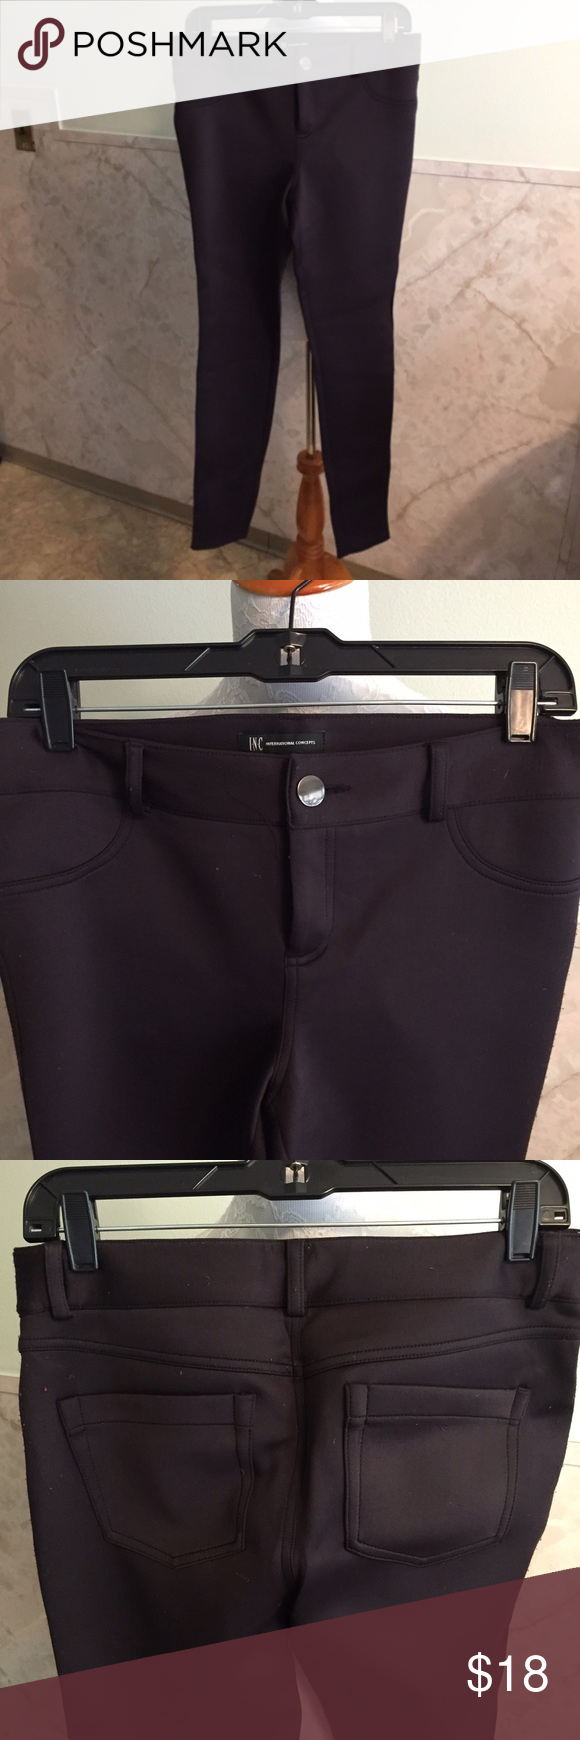 """INC Skinny Black Pants 10 These feel so smooth and soft. They are nylon and spandex. They have a basic button and zipper closure. The front pockets are faux and back are real. Inseam is 31"""". INC International Concepts Pants Skinny"""